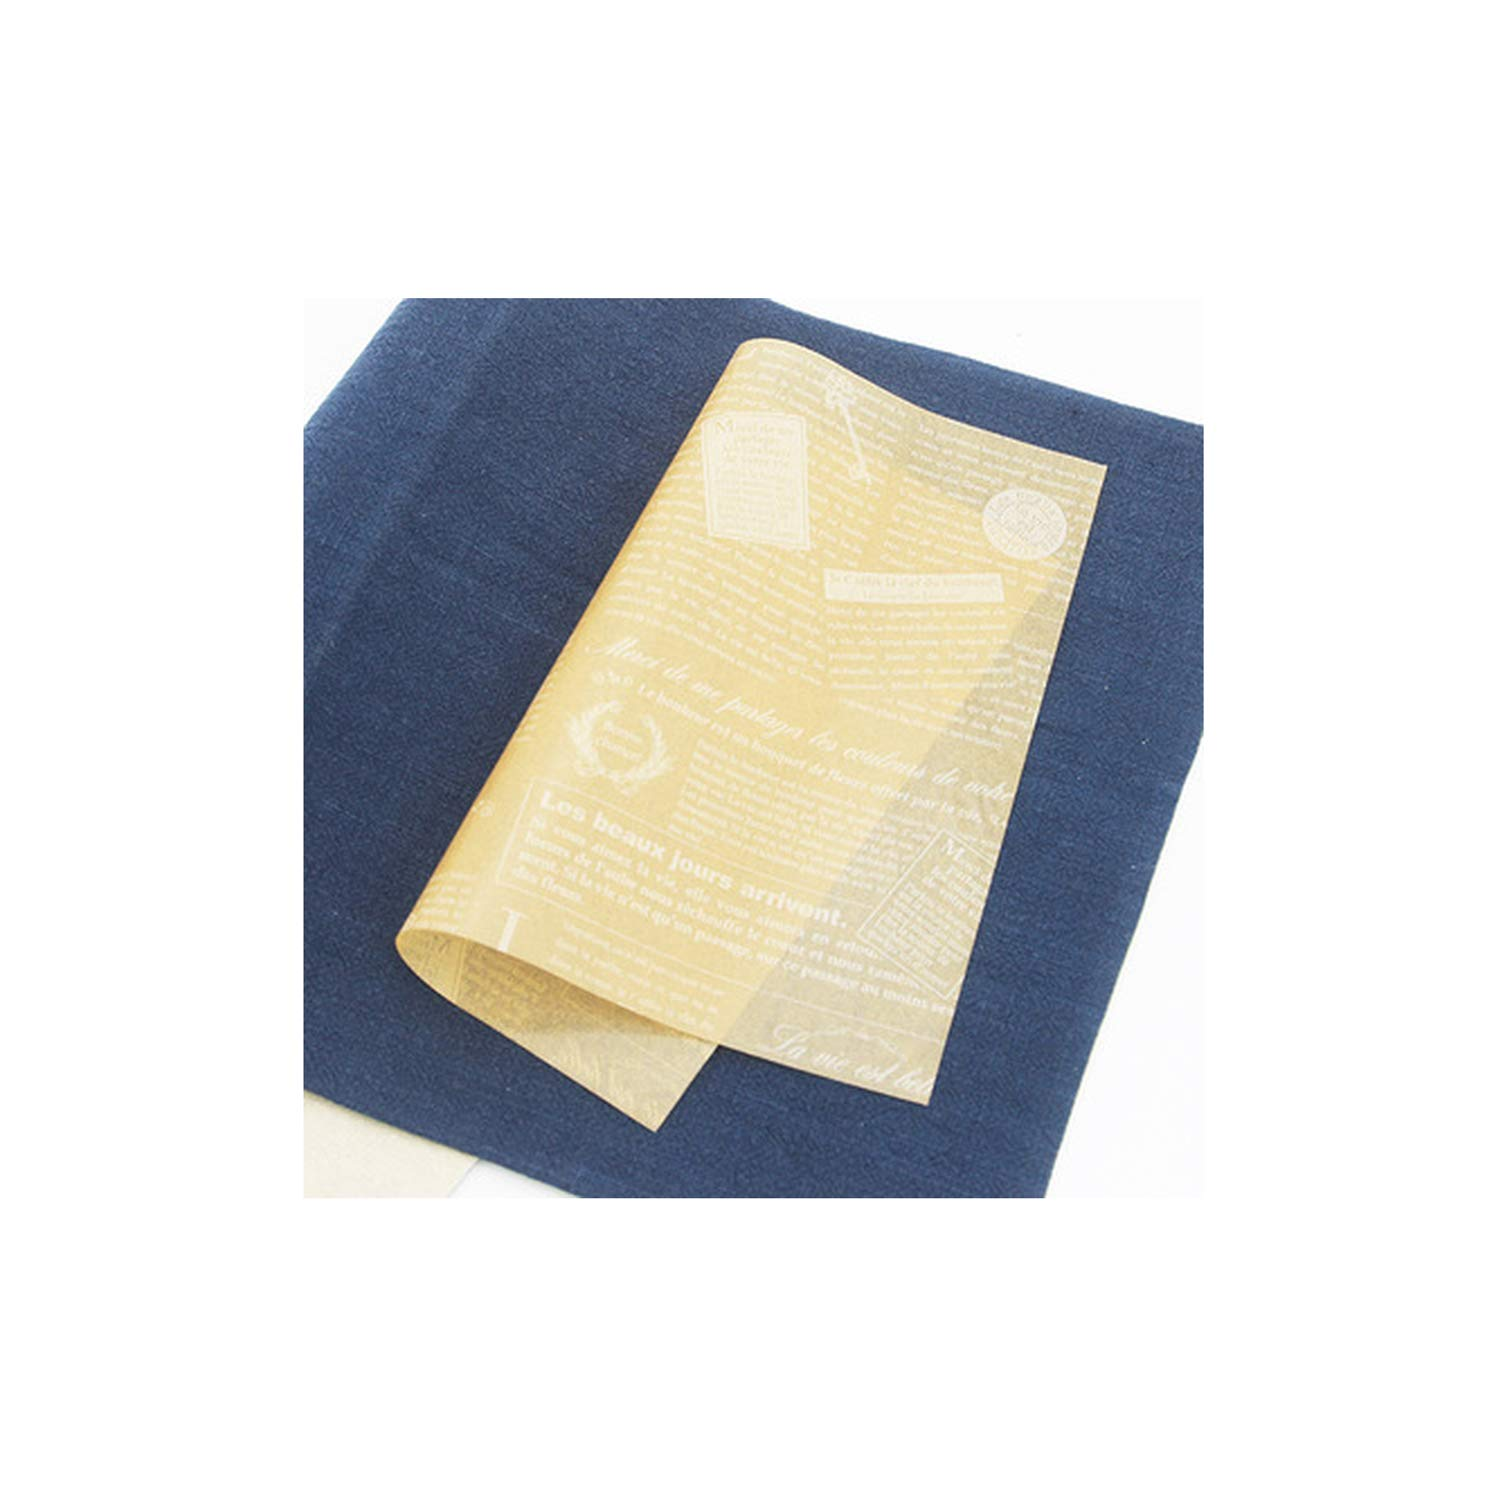 100Pcs/Lot Food Grade Grease Paper Food Wrappers Wrapping Paper Bread Sandwich Burger Fries Oilpaper Baking Tools,H by homesDecor